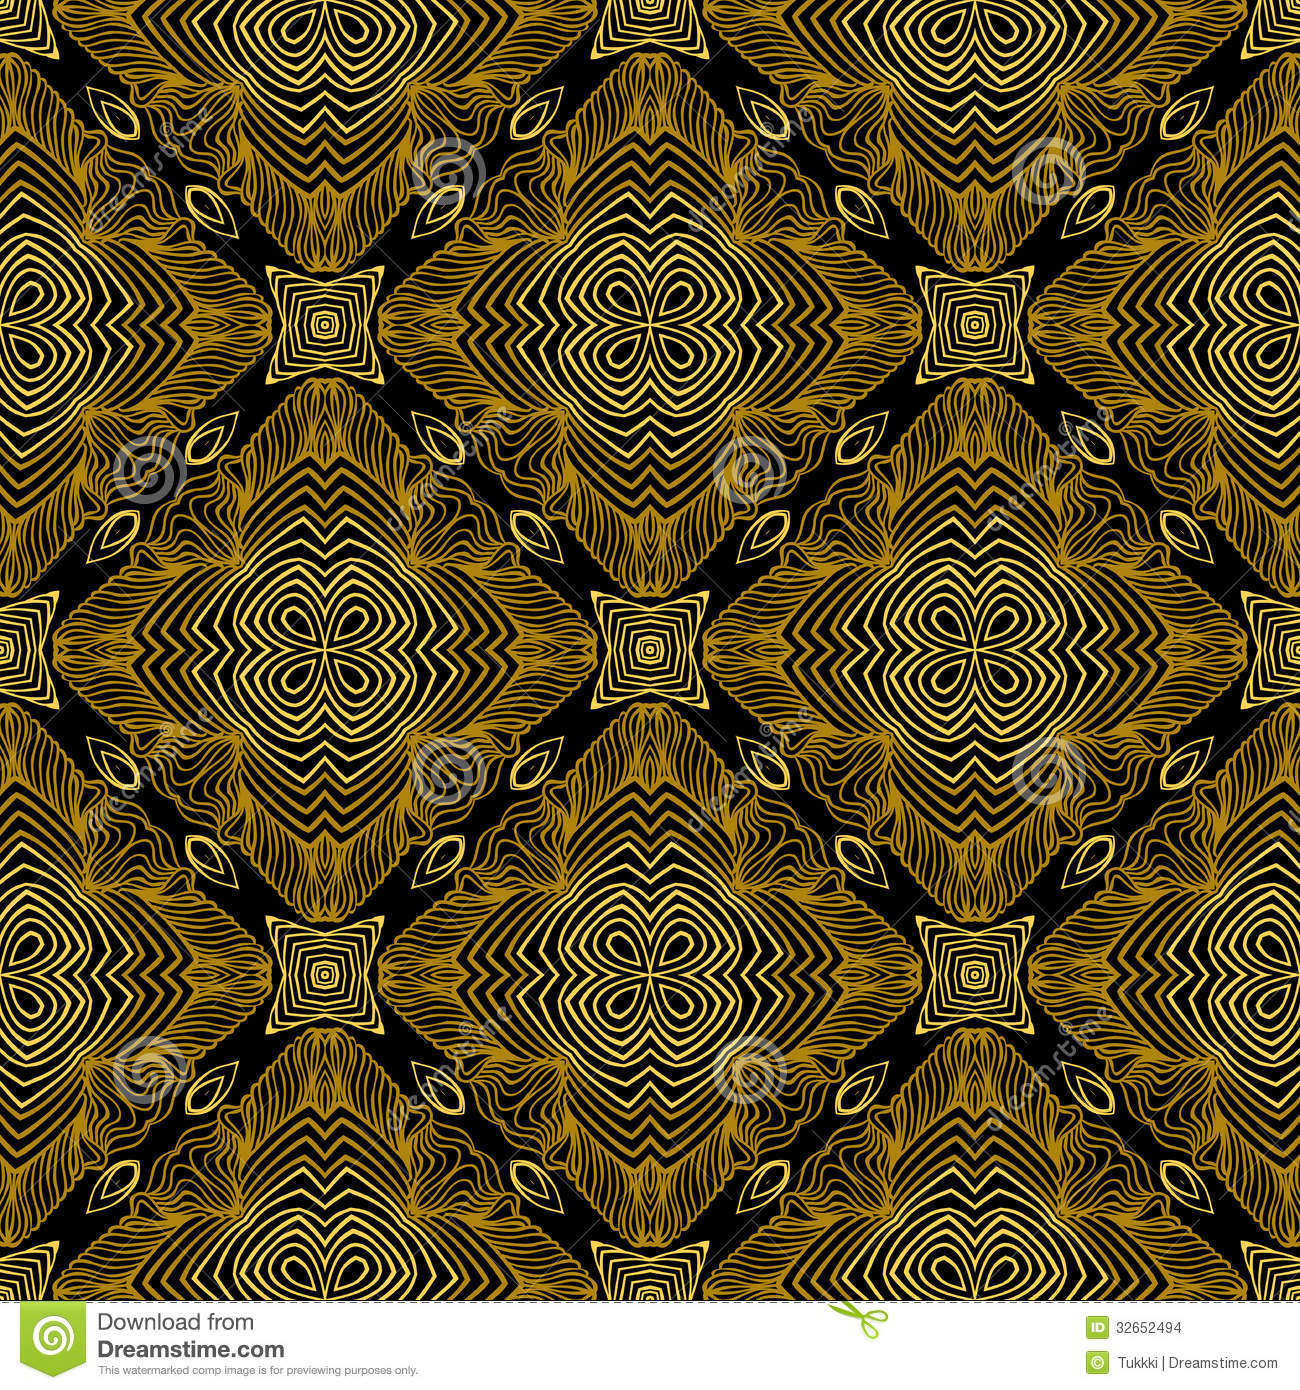 Art deco wallpapers and carpets Sidewalk Empire 1300x1390